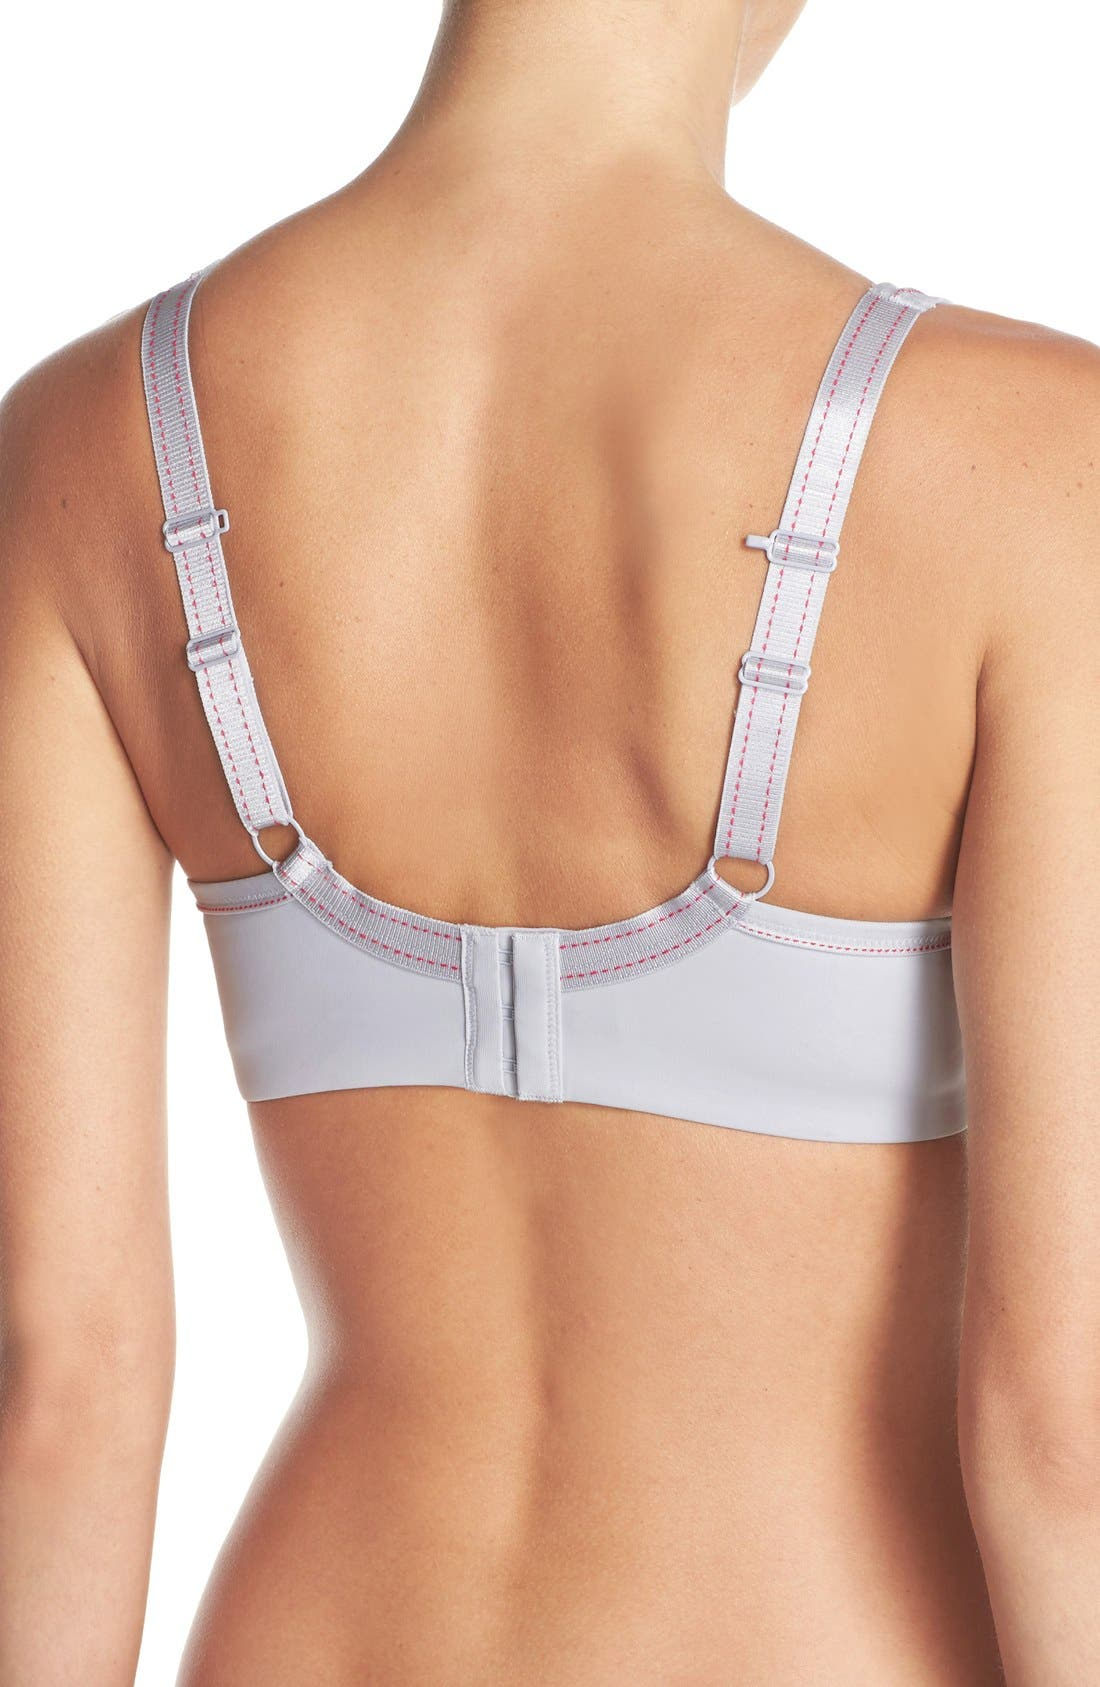 Underwire Sports Bra,                             Alternate thumbnail 25, color,